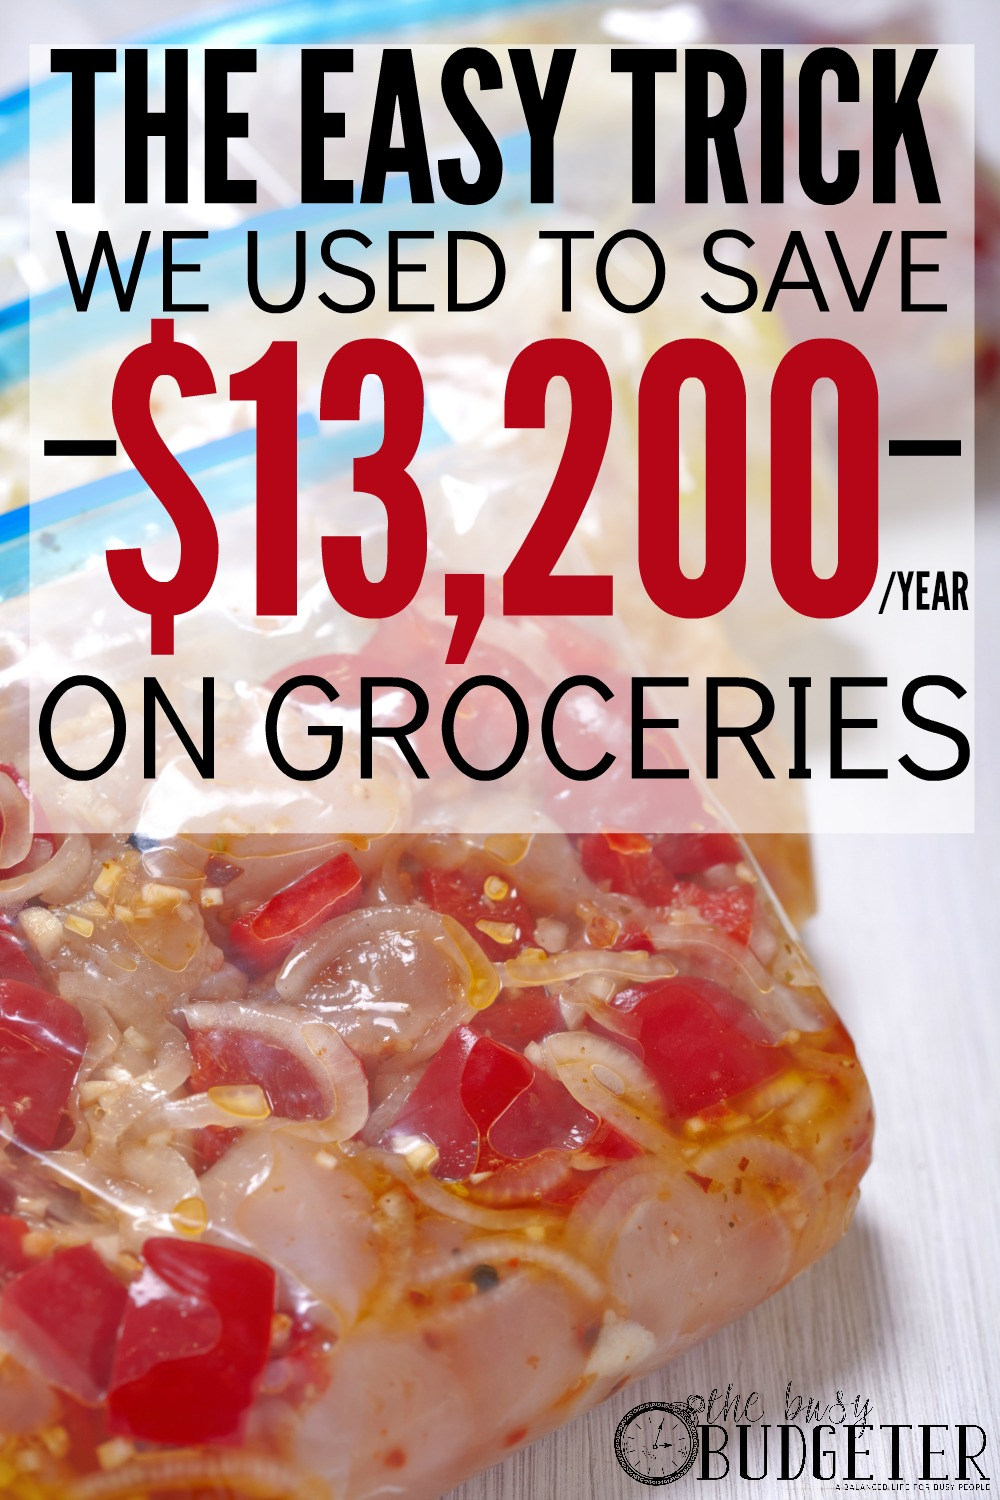 The Easy Trick We Used to Save $13,200/year On Groceries. I've been looking for an easy way to save on groceries! This sounds exactly like me. I've tried everything! Menu Planning, setting a higher grocery budget, setting a lower grocery budget, couponing, the cash back apps and memberhsip stores like Costco. No matter what I do, we spend a ridiculous amount of money on groceries and we never even seem to have anything in the house, This is worth a shot. I'm a little bit hopeful!